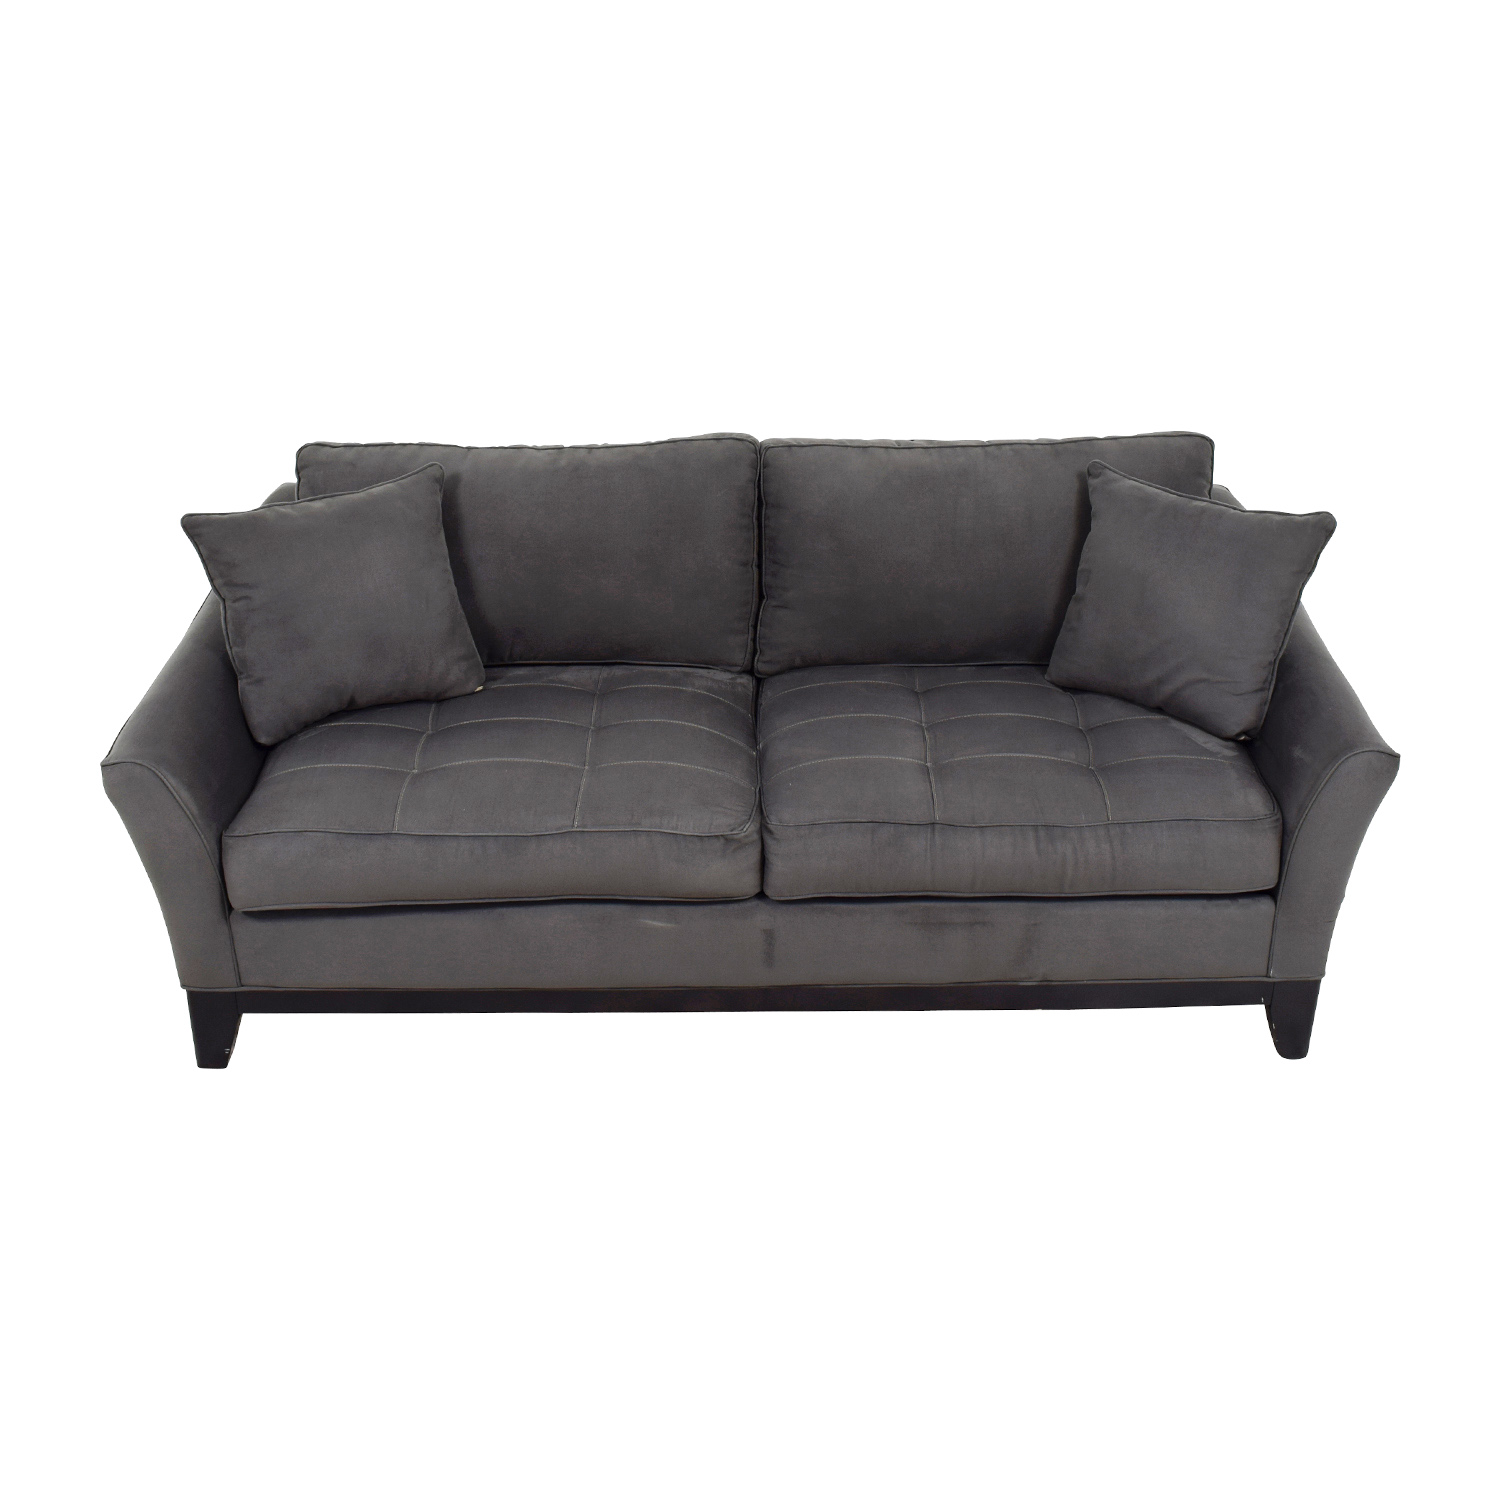 classic sofa right angled sectional sofas used for sale